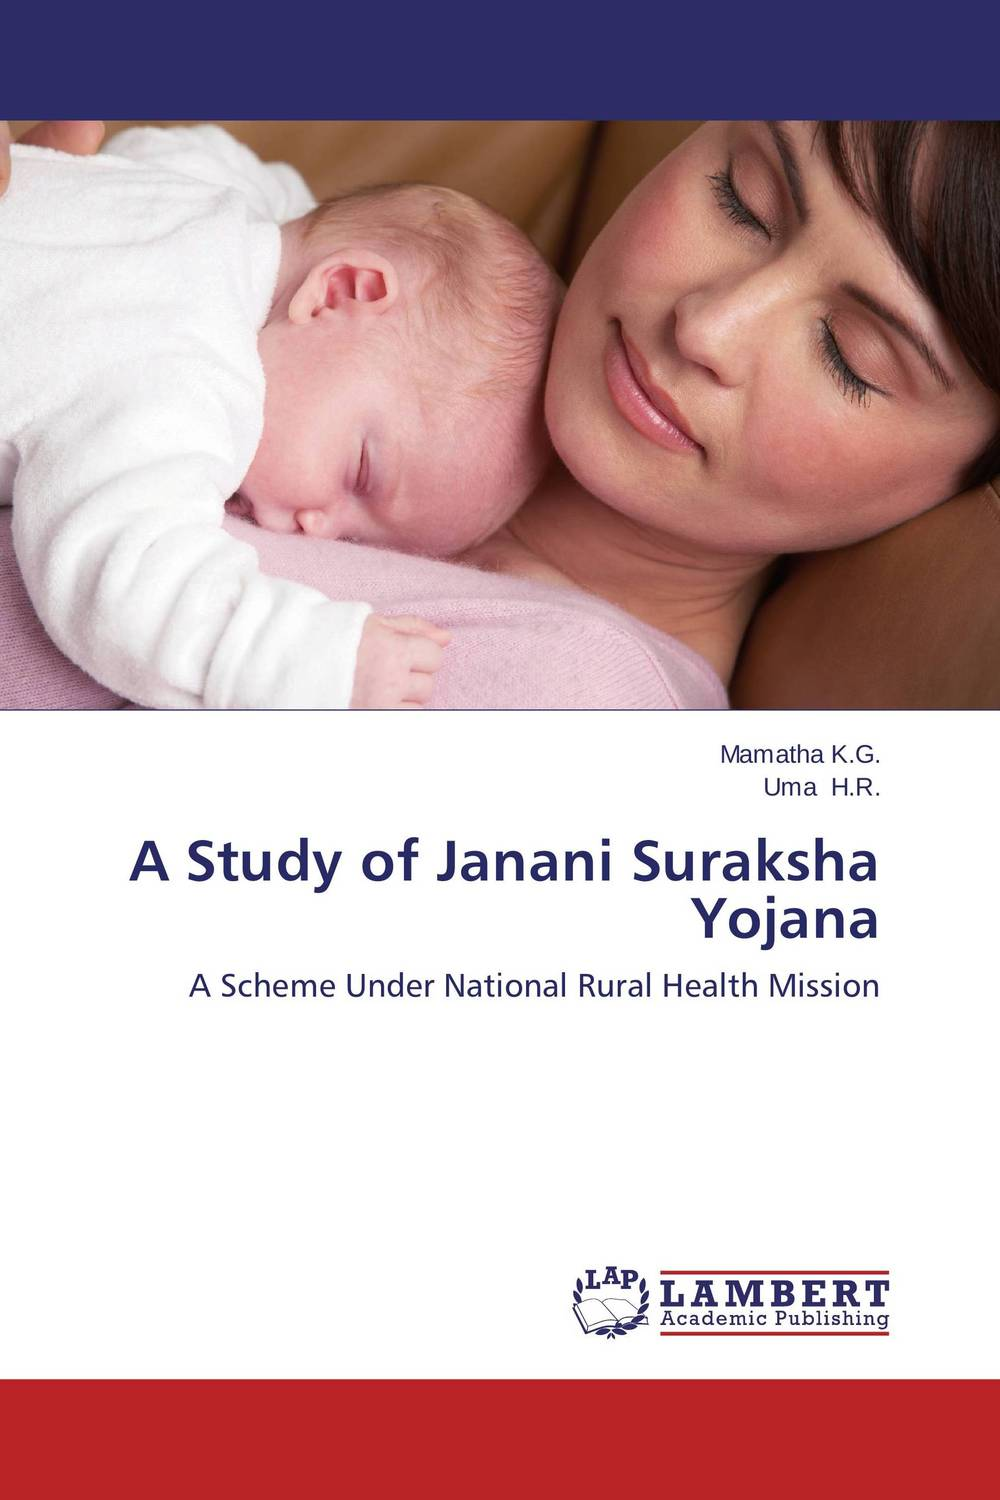 A Study of Janani Suraksha Yojana a van soest explaining subjective well being the role of victimization trust health and social norms